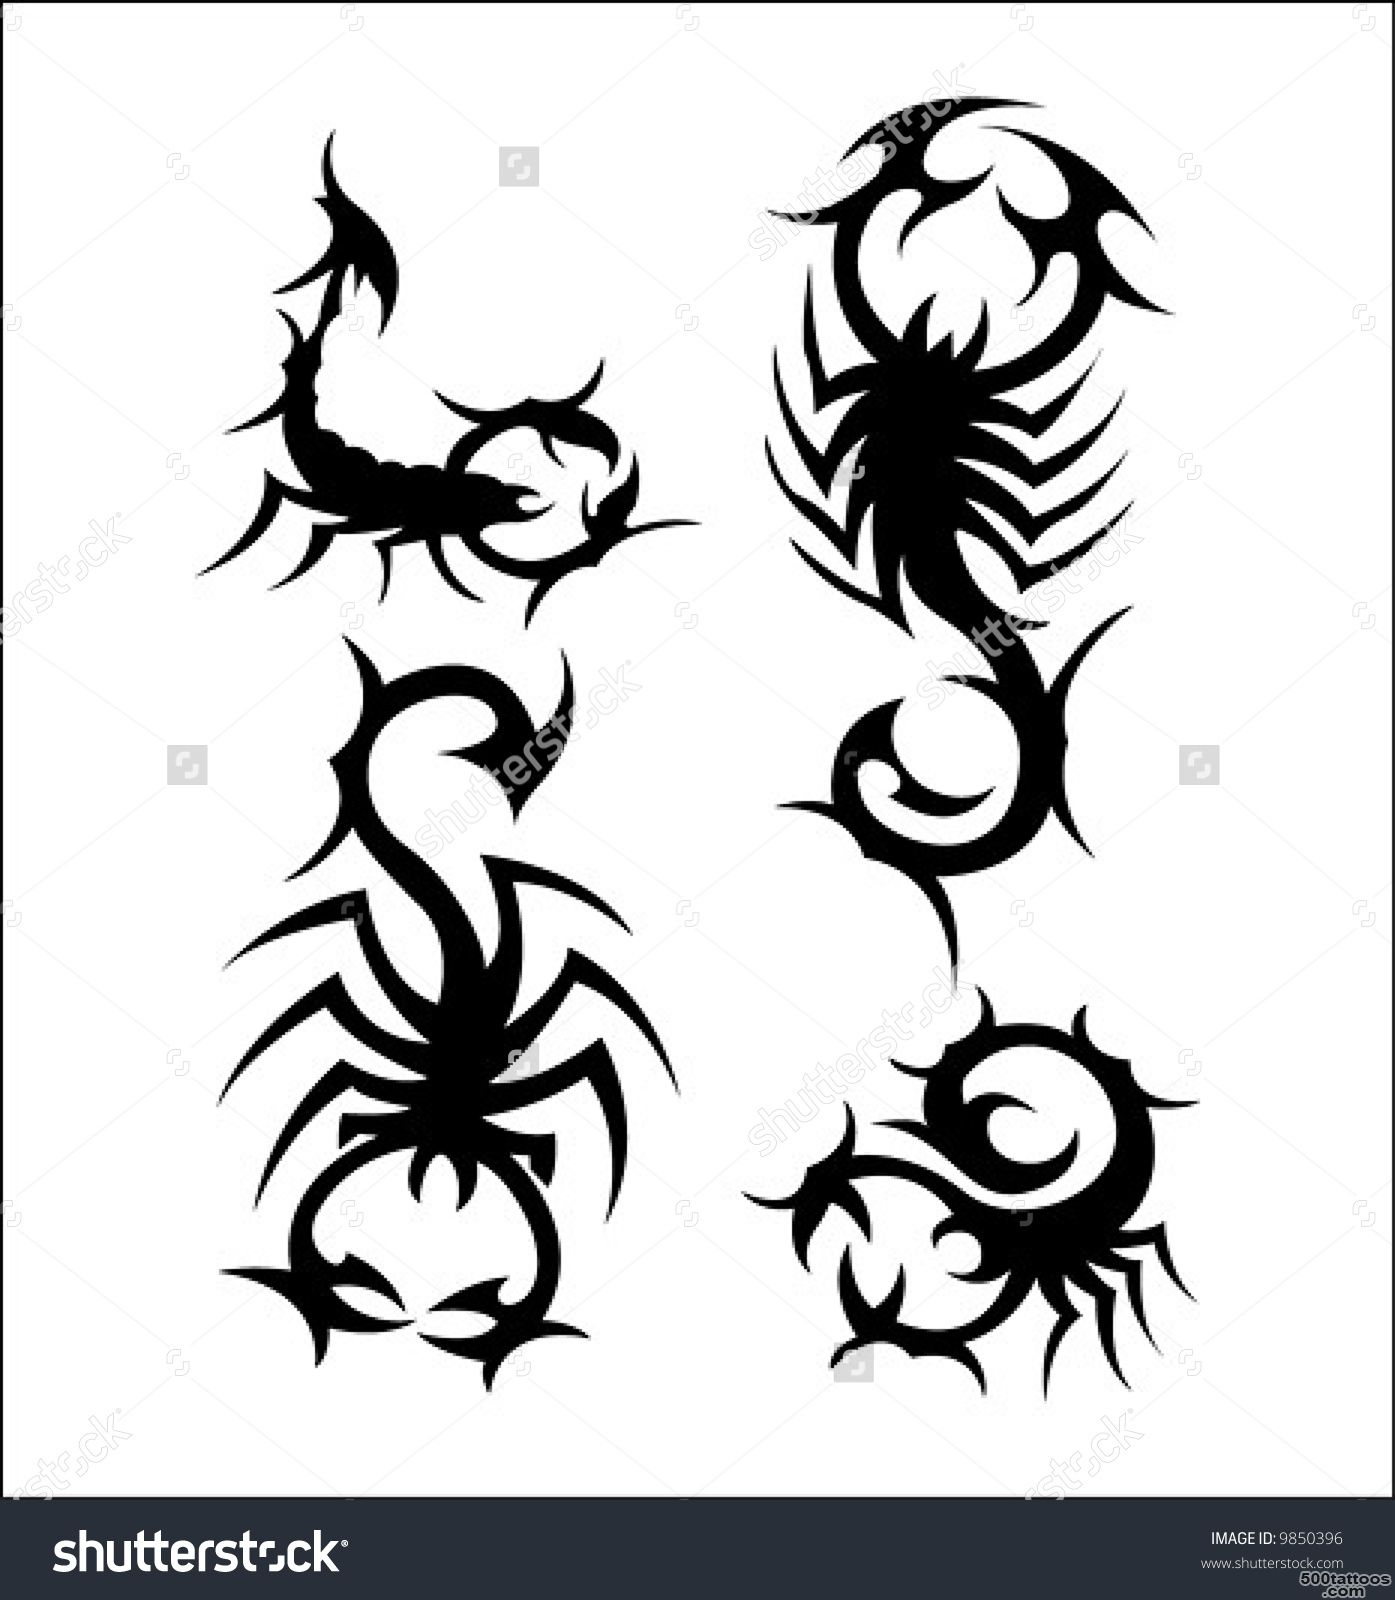 Scorpion Tattoo Stock Photos, Images, amp Pictures  Shutterstock_15